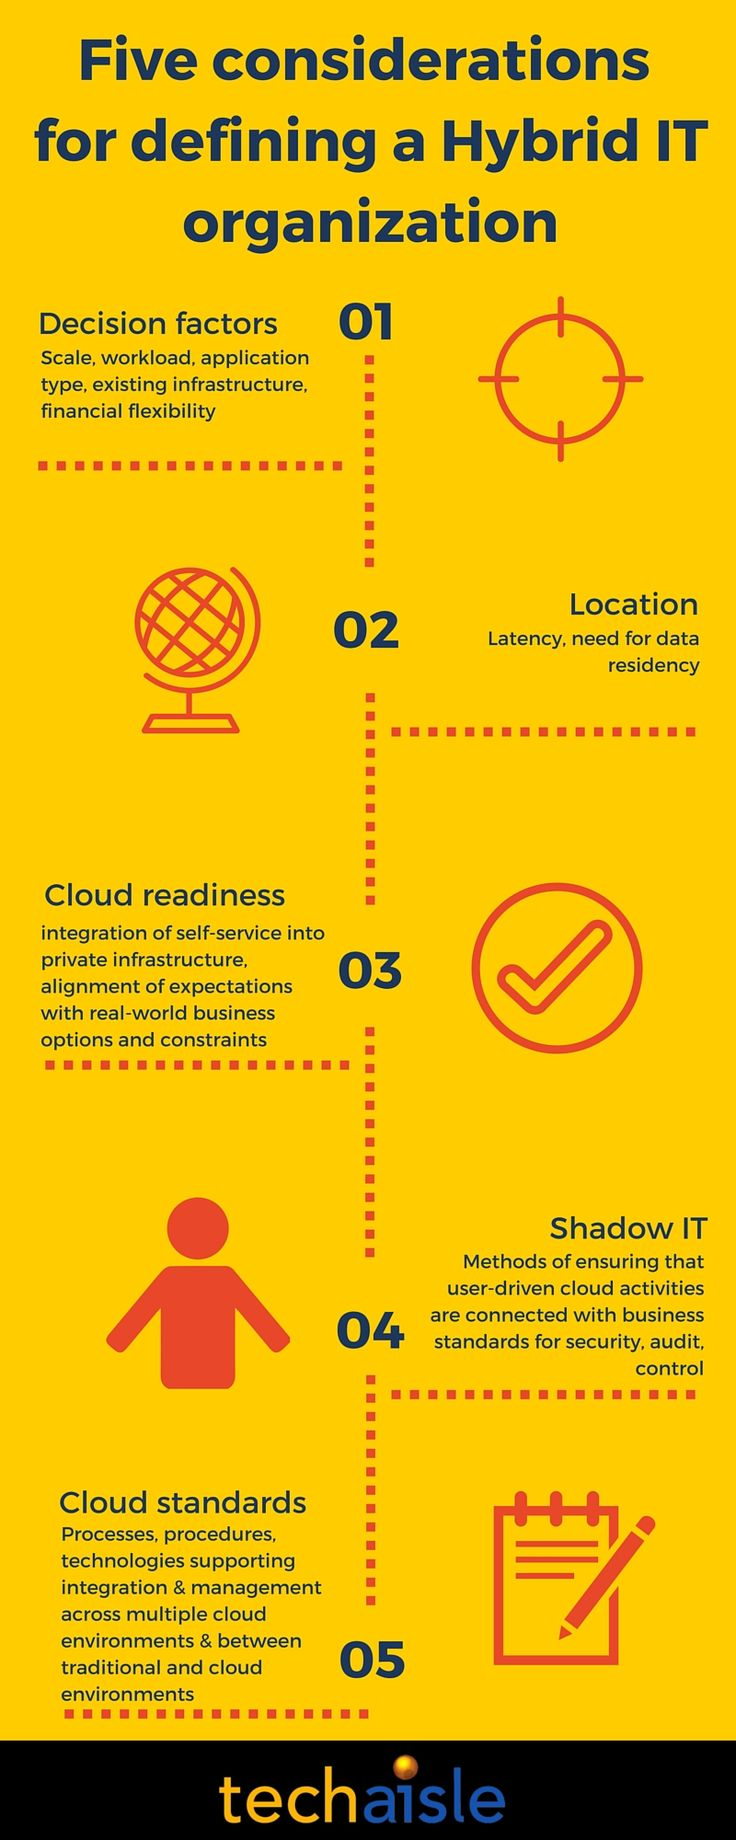 5 issues for business to think about and plan for when moving to Hybrid IT organization